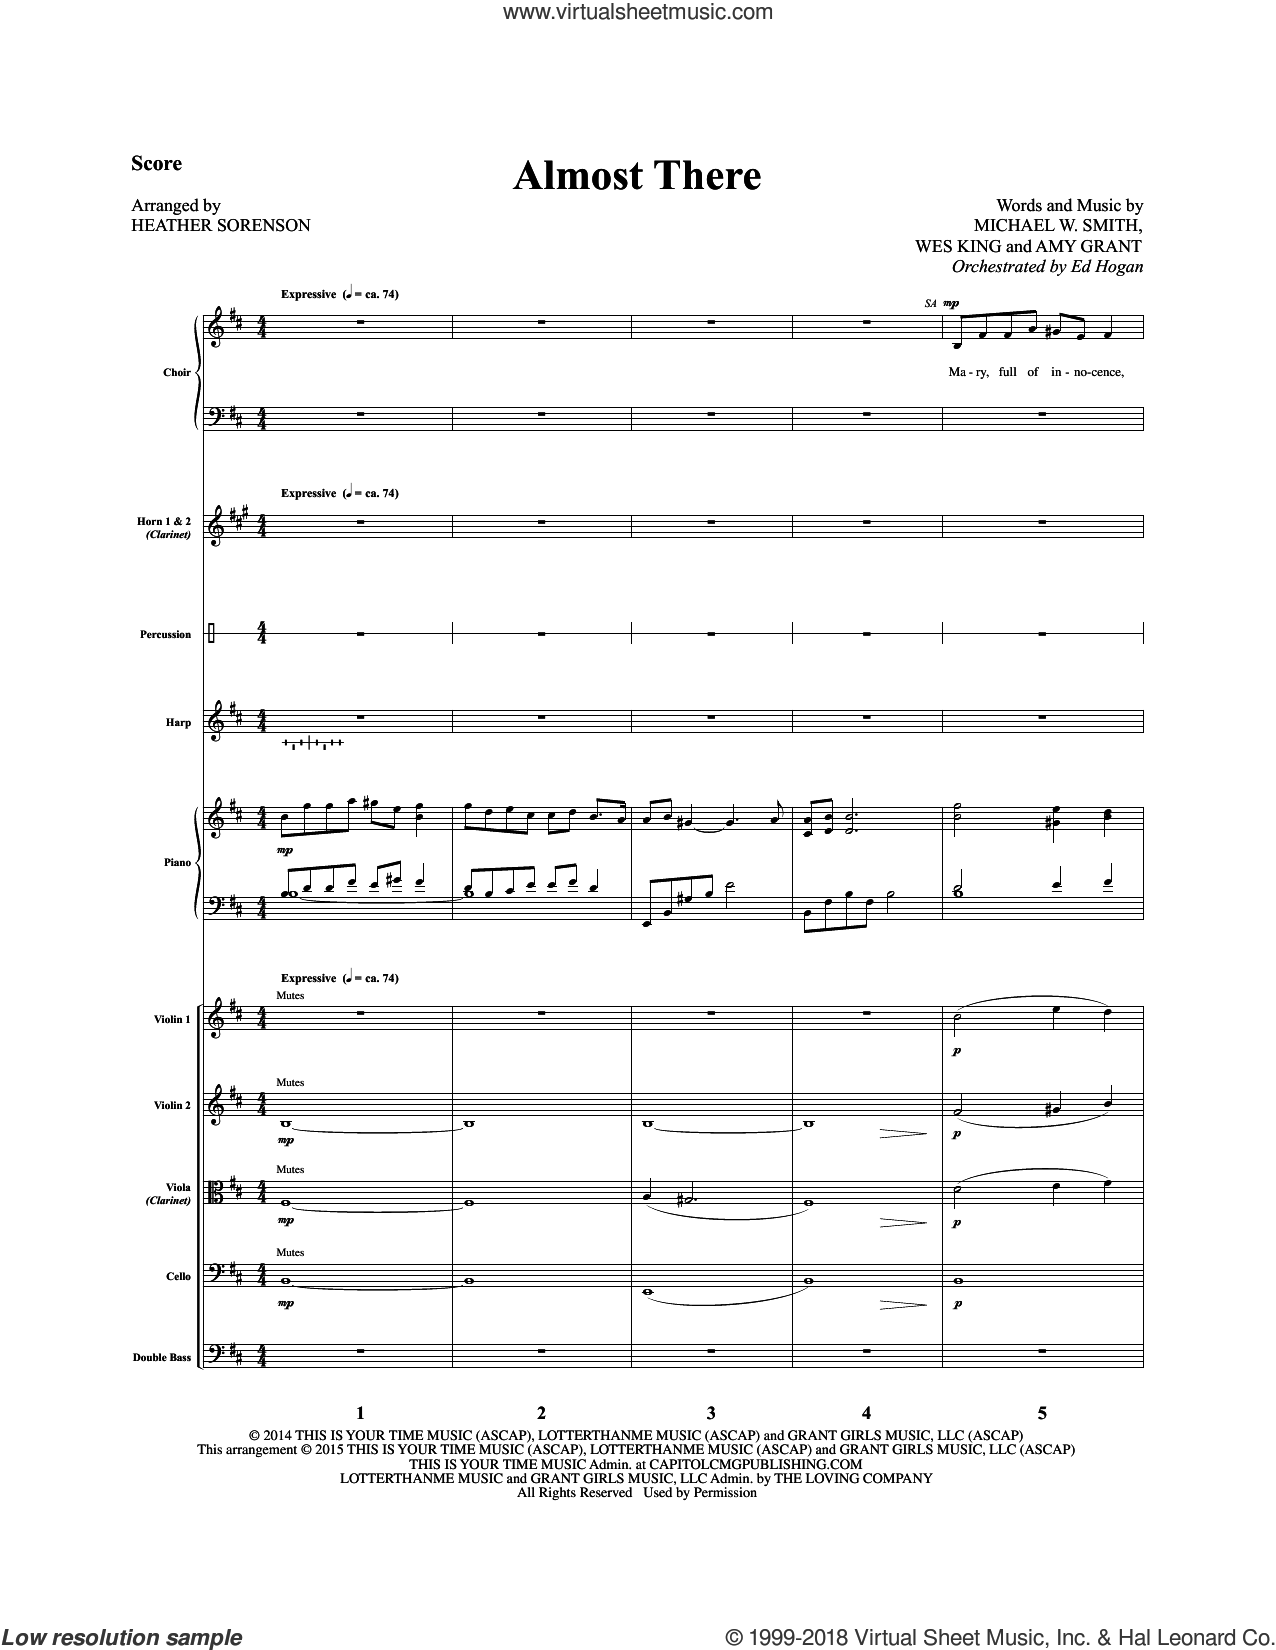 Almost There (COMPLETE) sheet music for orchestra/band by Heather Sorenson, Amy Grant, Michael W. Smith and Wes King, intermediate skill level